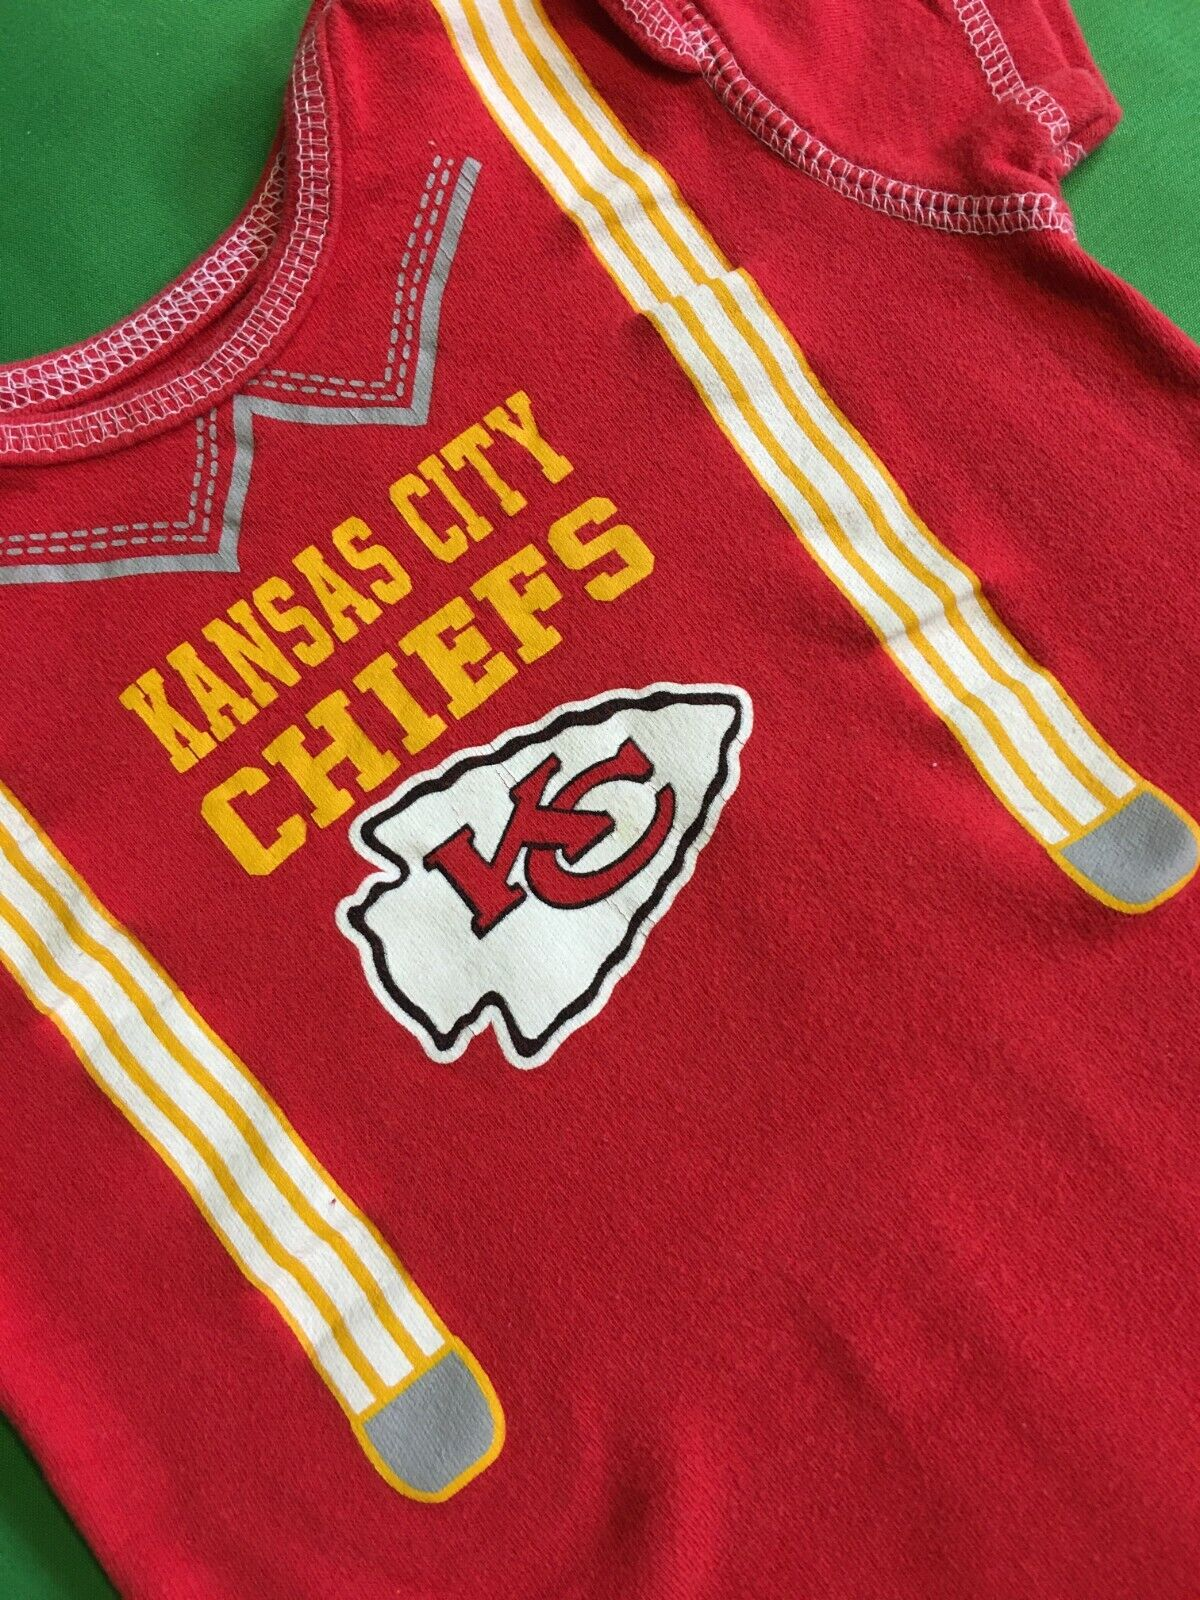 B352/95 NFL Kansas City Chiefs Boys' Baby-Grow Braces 18 months